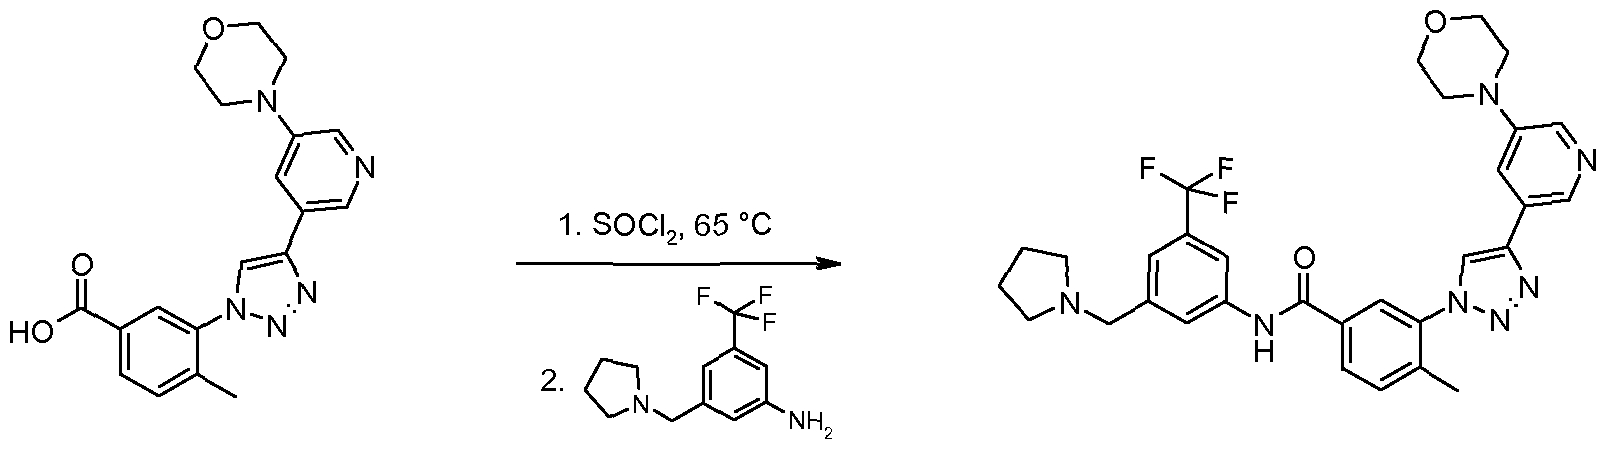 synthesising 2c-b 2c-b or 2,5-dimethoxy-4-bromo phenethylamine is a psychedelic drug of the 2c family it was first synthesized by alexander shulgin in 1974 in shulgin's book pihkal.